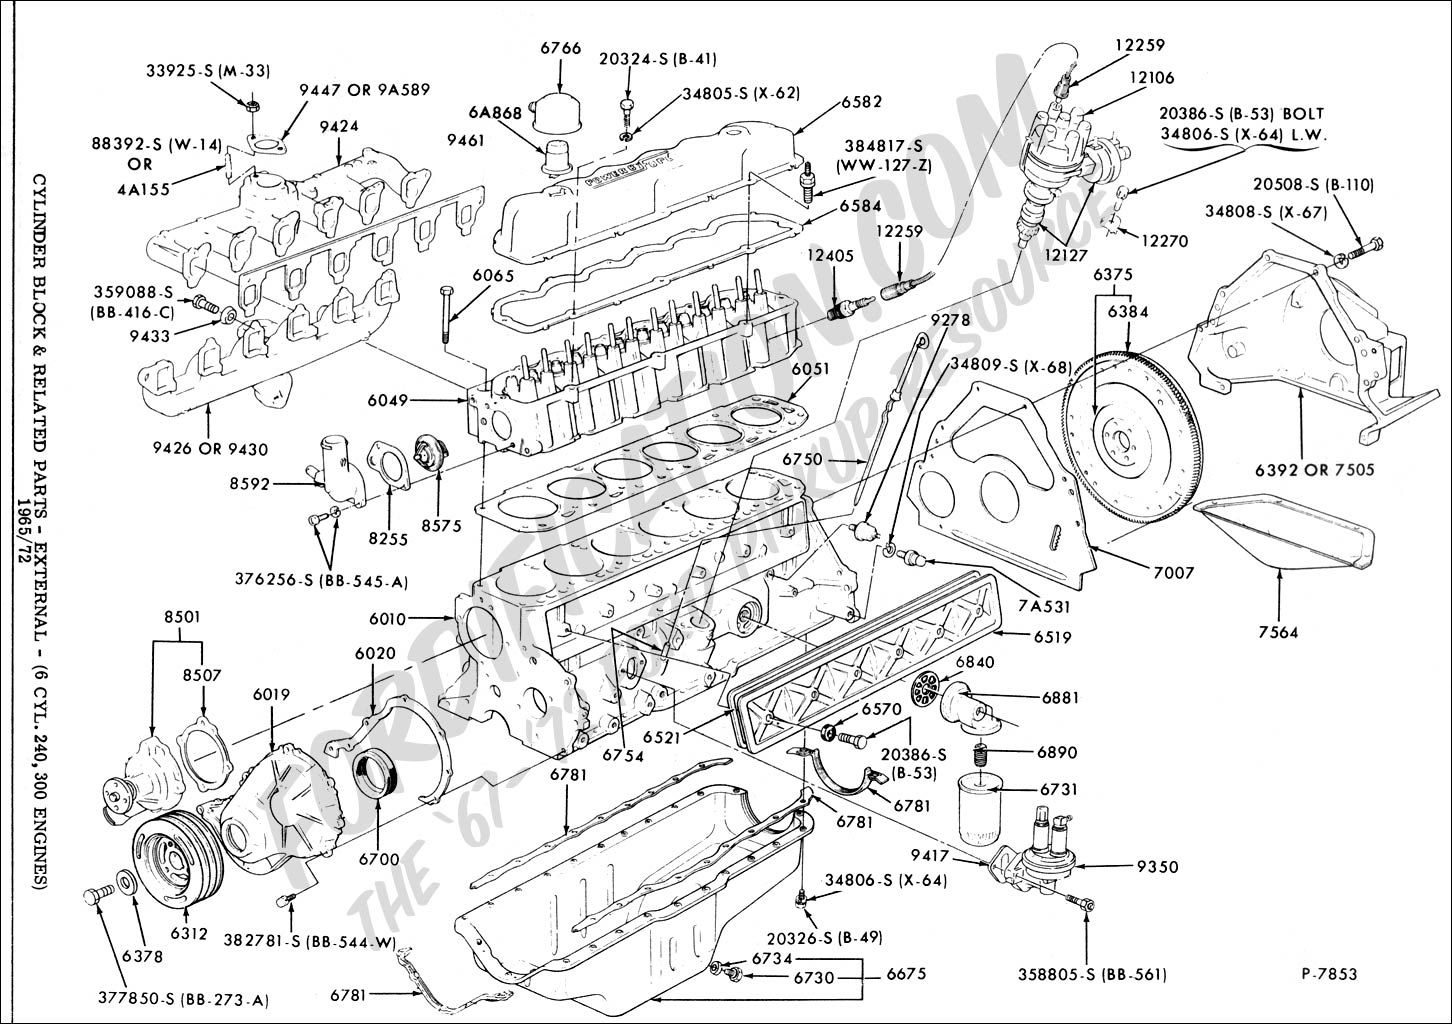 ford straight 6 engine diagram [ 1452 x 1024 Pixel ]